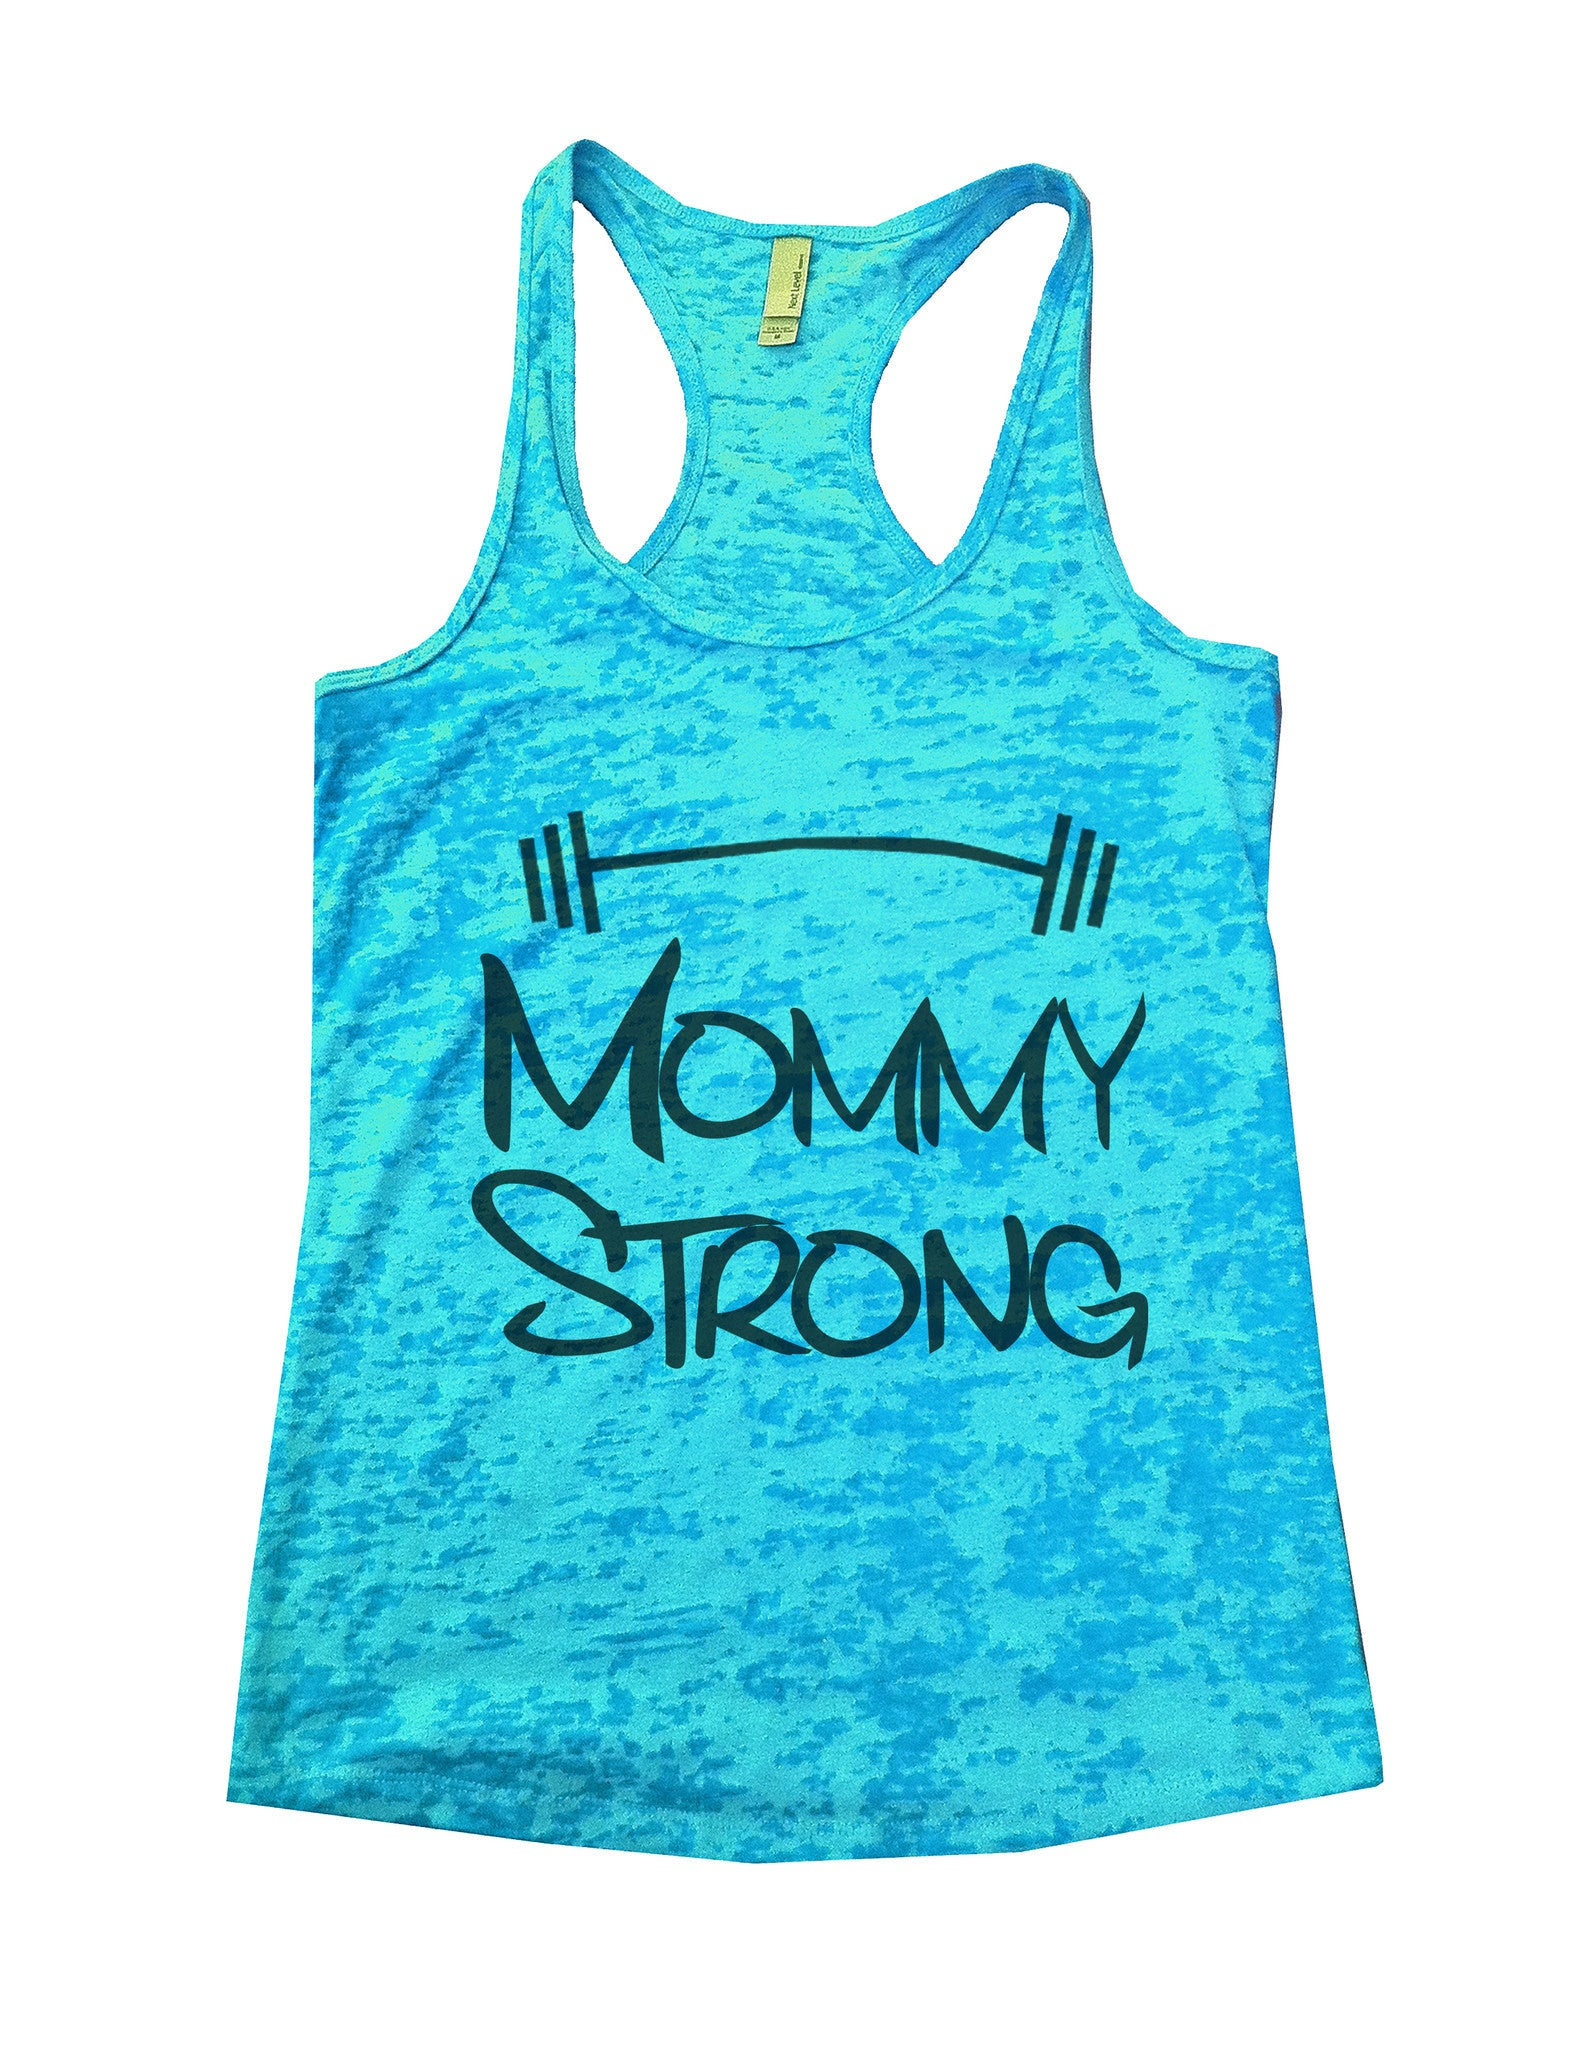 Mommy Strong Mothers Motivational Burnout Tank Top By BurnoutTankTops.com - 515 - Funny Shirts Tank Tops Burnouts and Triblends  - 4